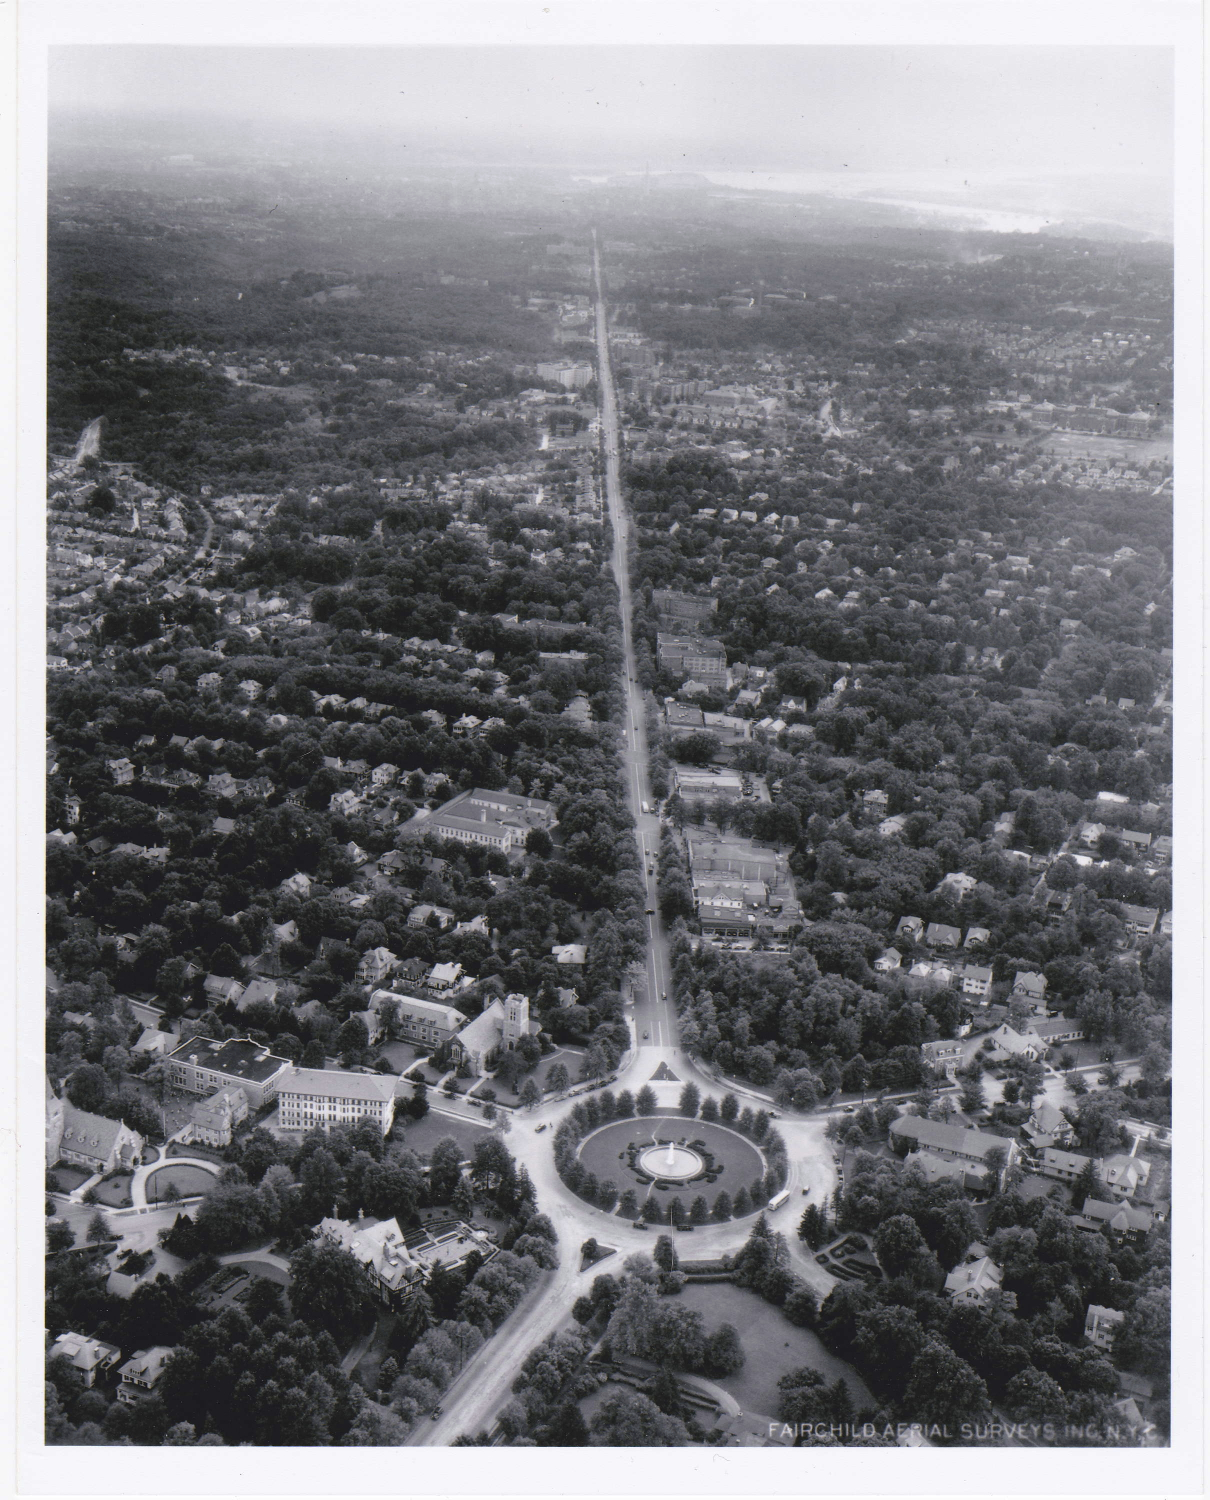 Connecticut Ave aerial view ca 1930 by Judy Ball.jpg